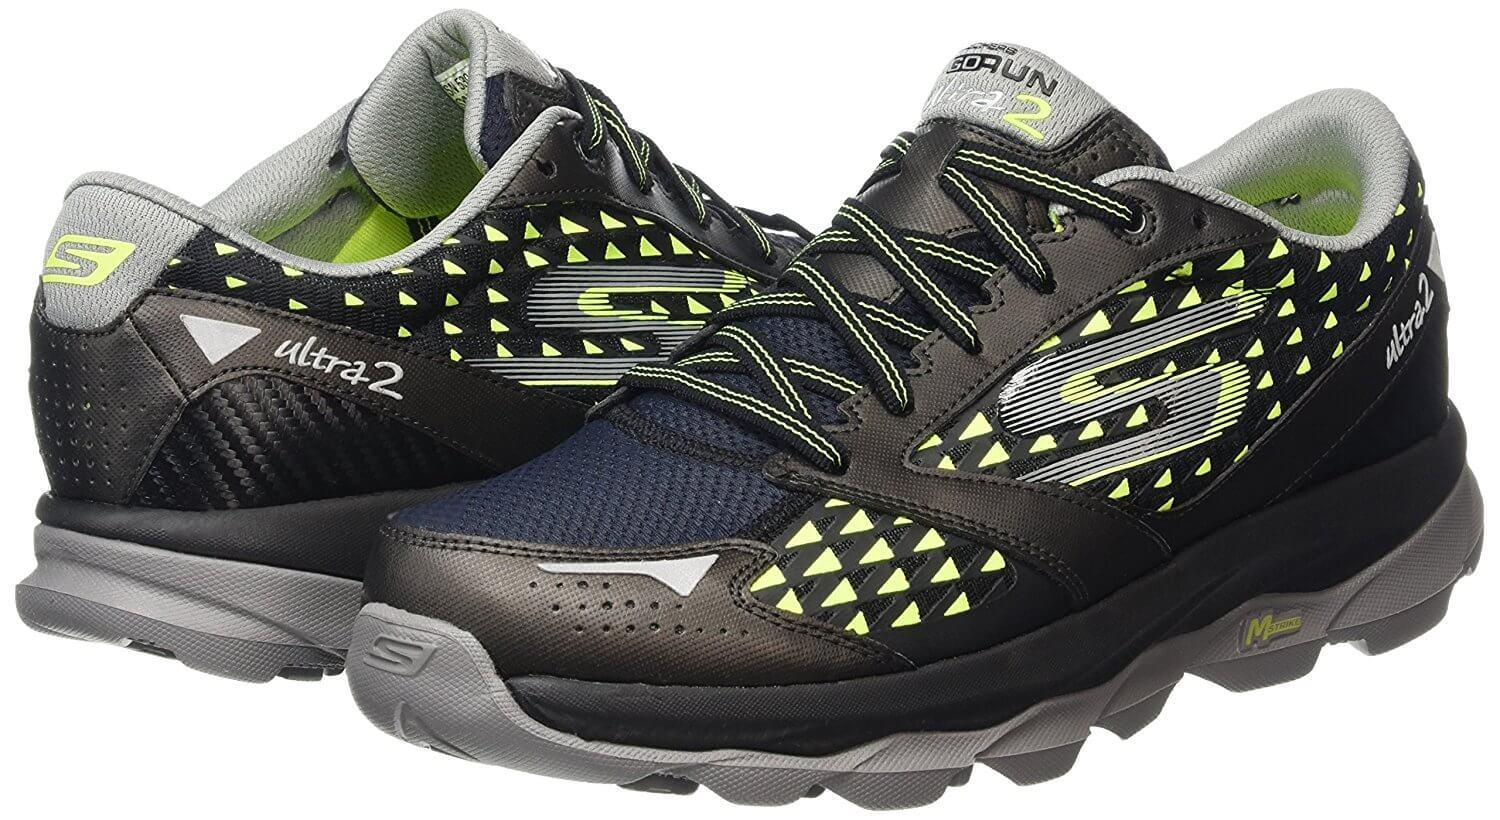 skechers running shoes.